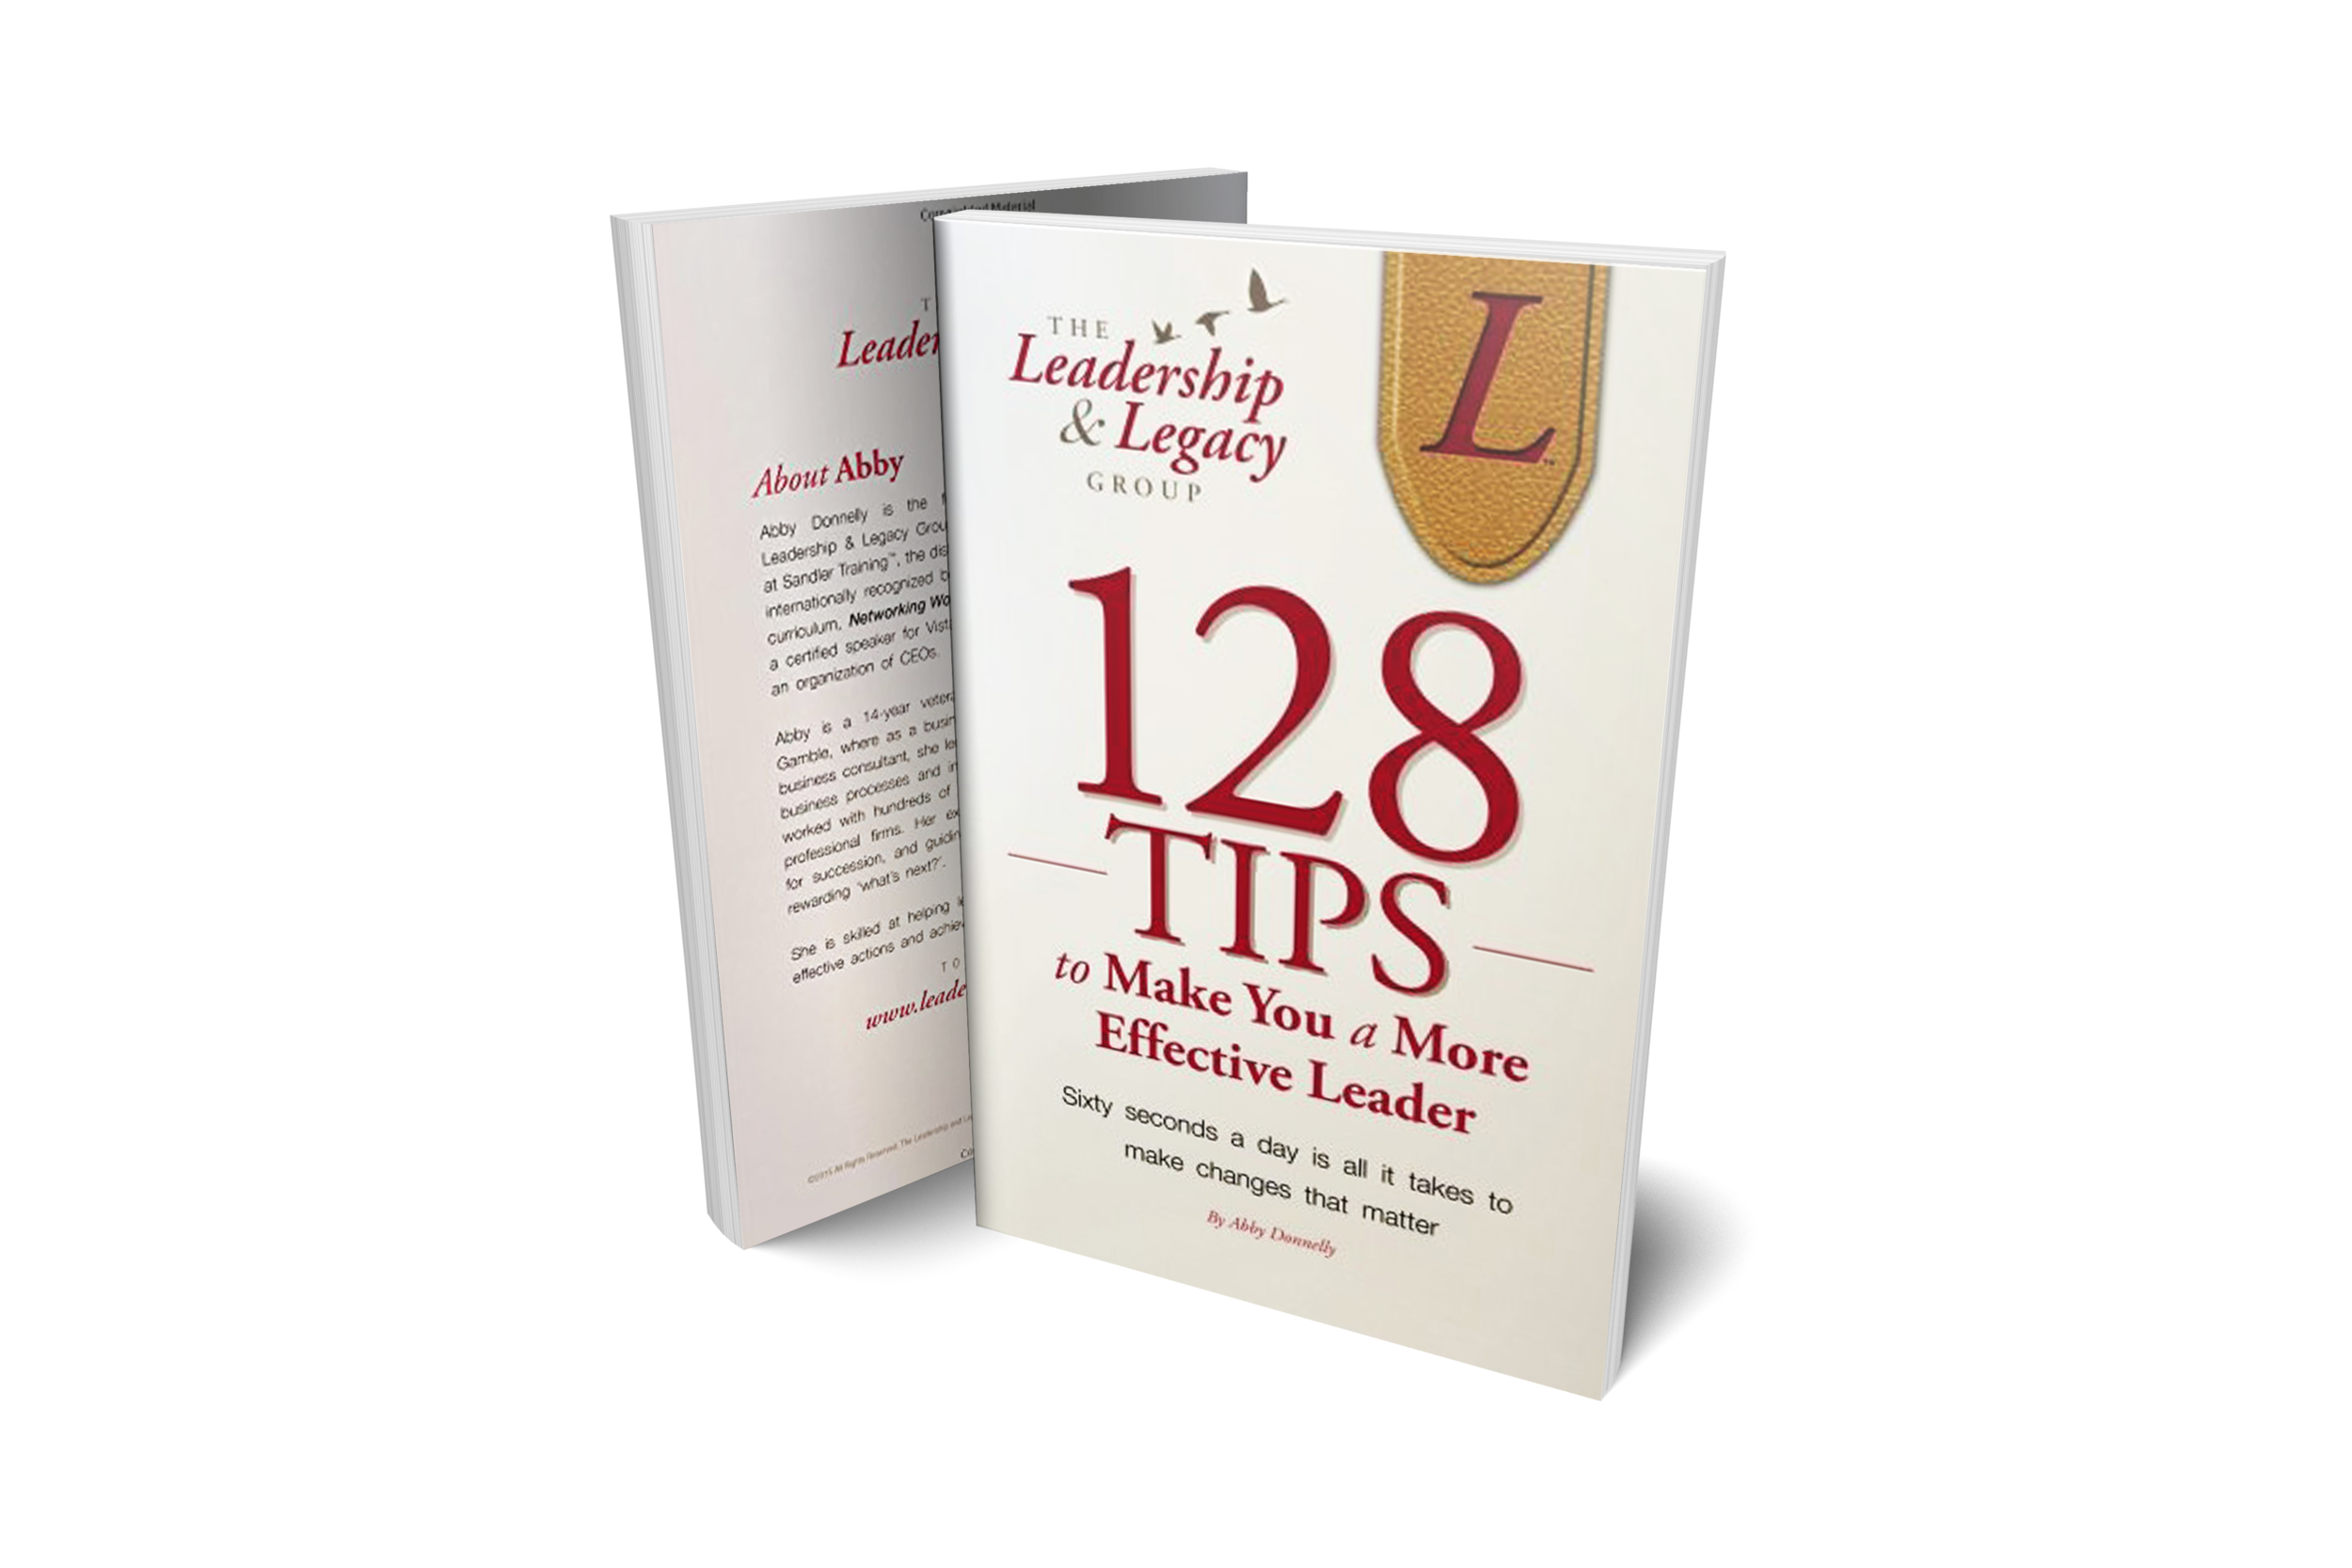 128 tips front-back single view.png